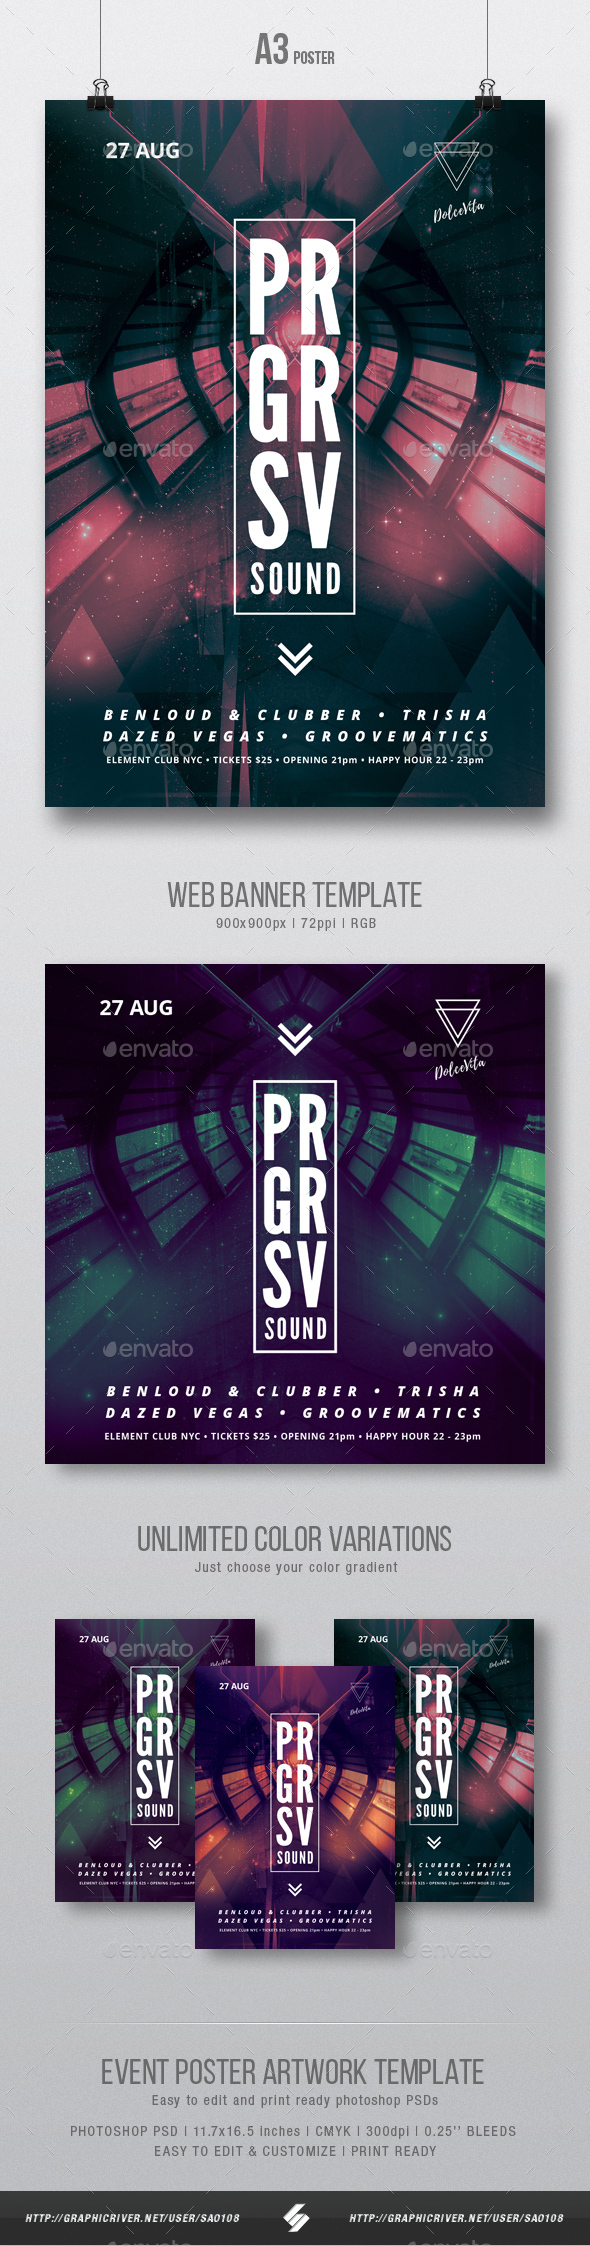 Progressive Sound - Party Flyer / Poster Template A3 - Clubs & Parties Events